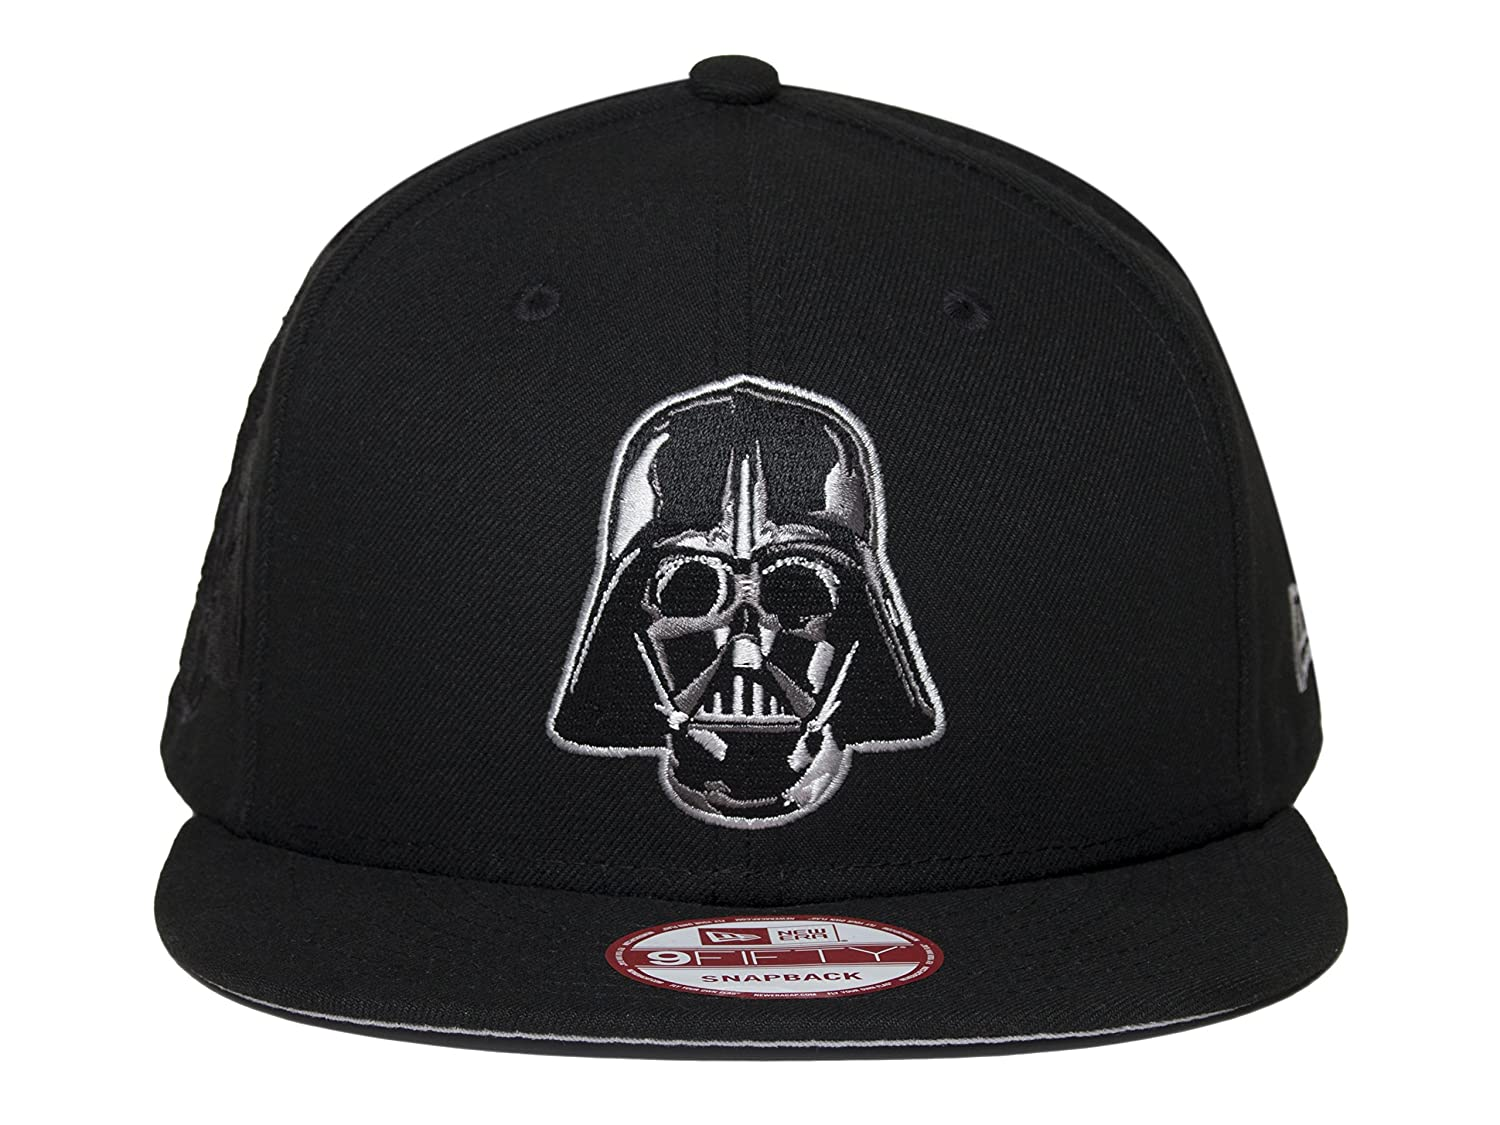 best service 00d04 ac8c6 Star Wars Darth Vader Embroidered Logo 9Fifty Snapback Gorra De Béisbol   Amazon.es  Juguetes y juegos